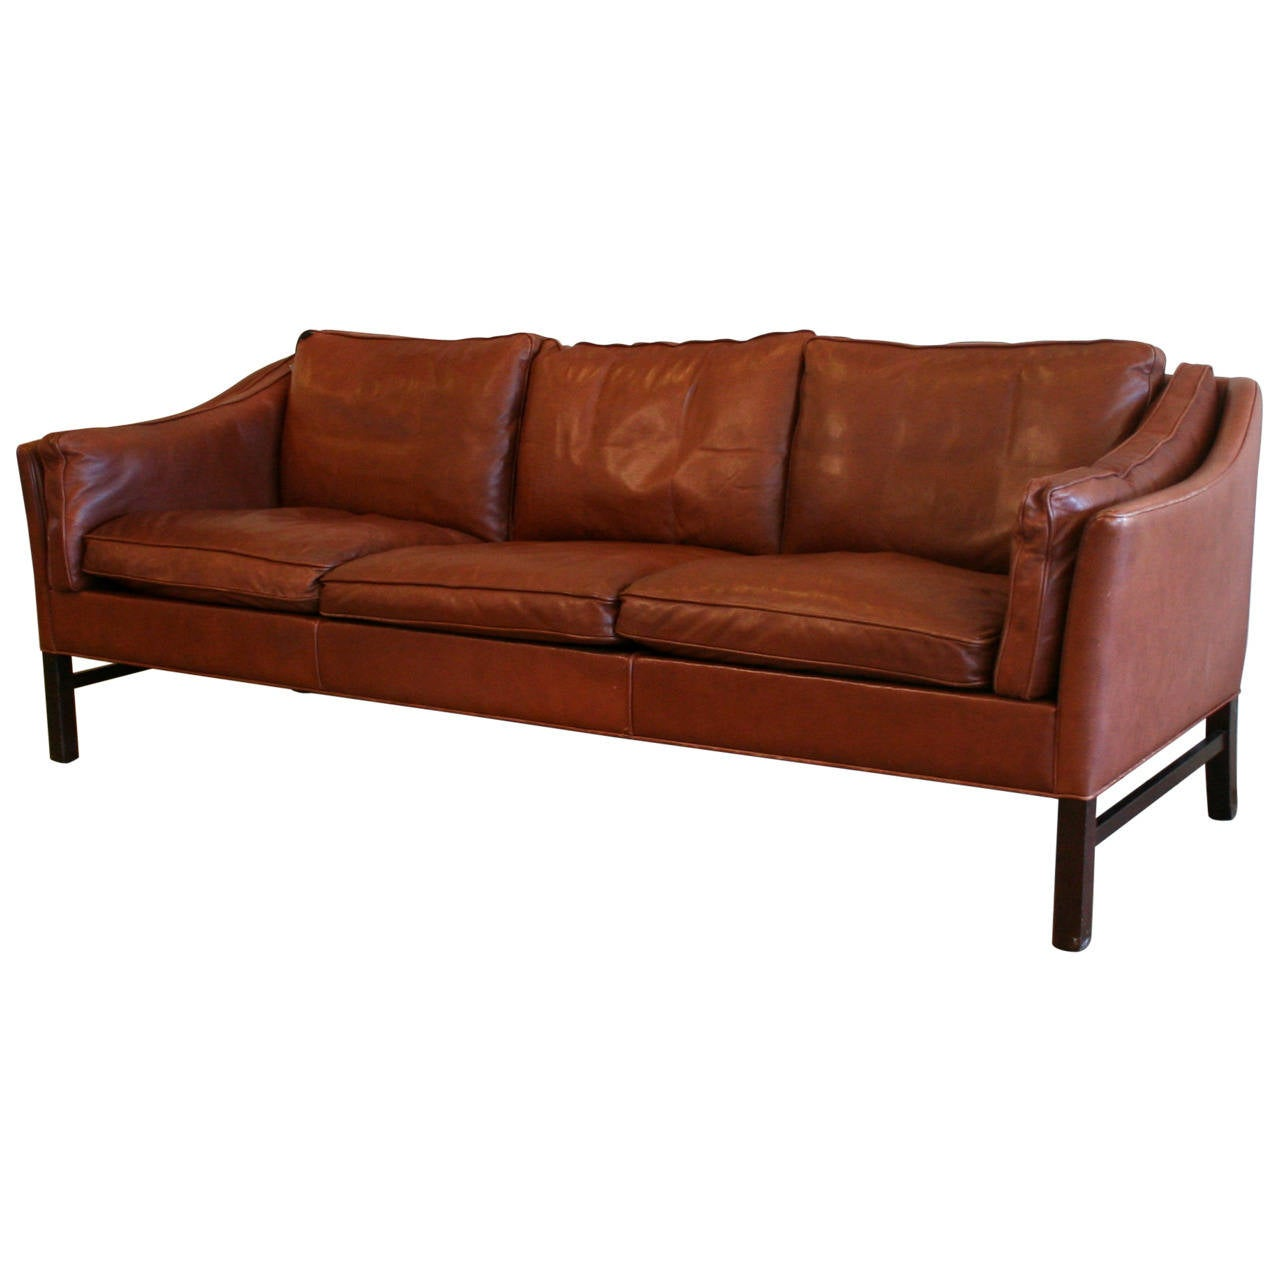 Vintage danish red brown leather sofa at 1stdibs Vintage tan leather sofa